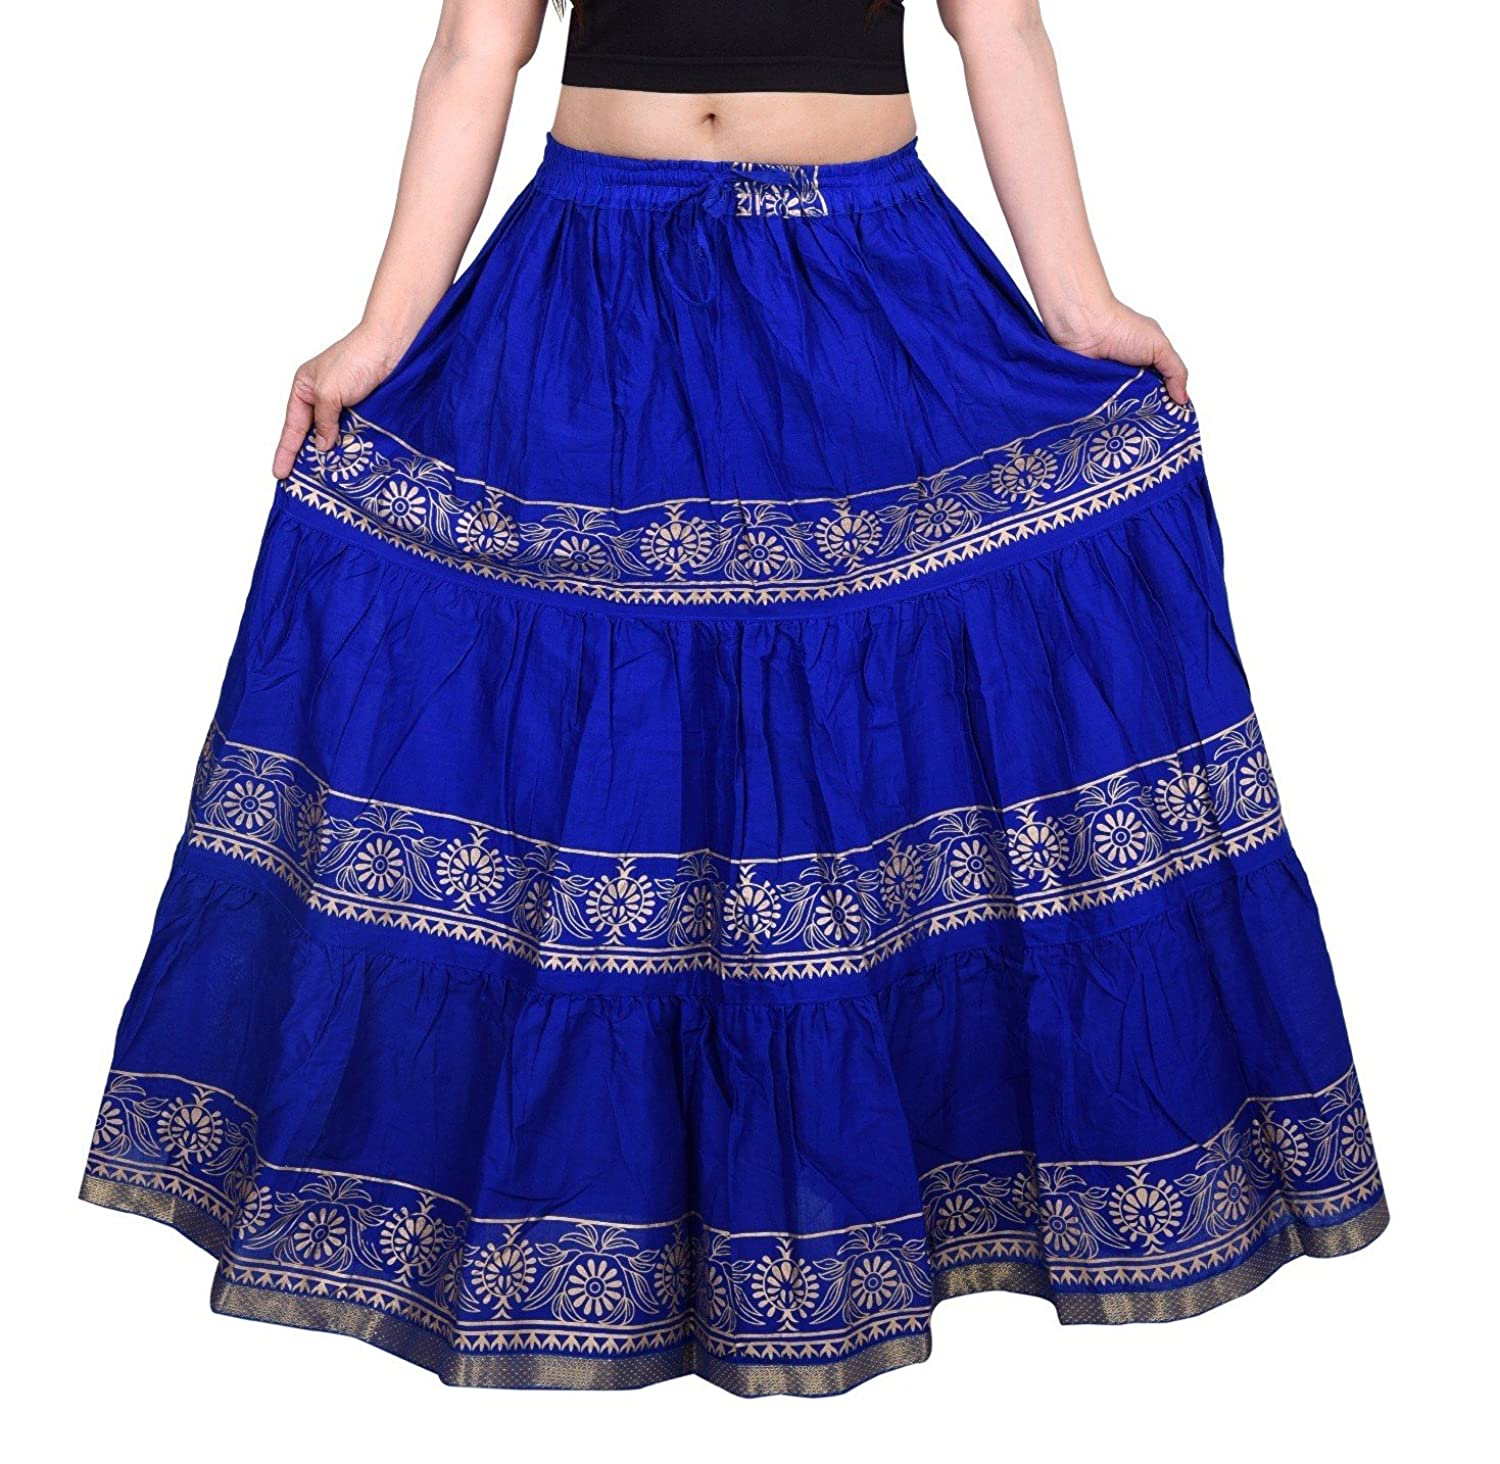 Simple Top Skirts Designs For Girls  Skirts Collection 2015 For Women